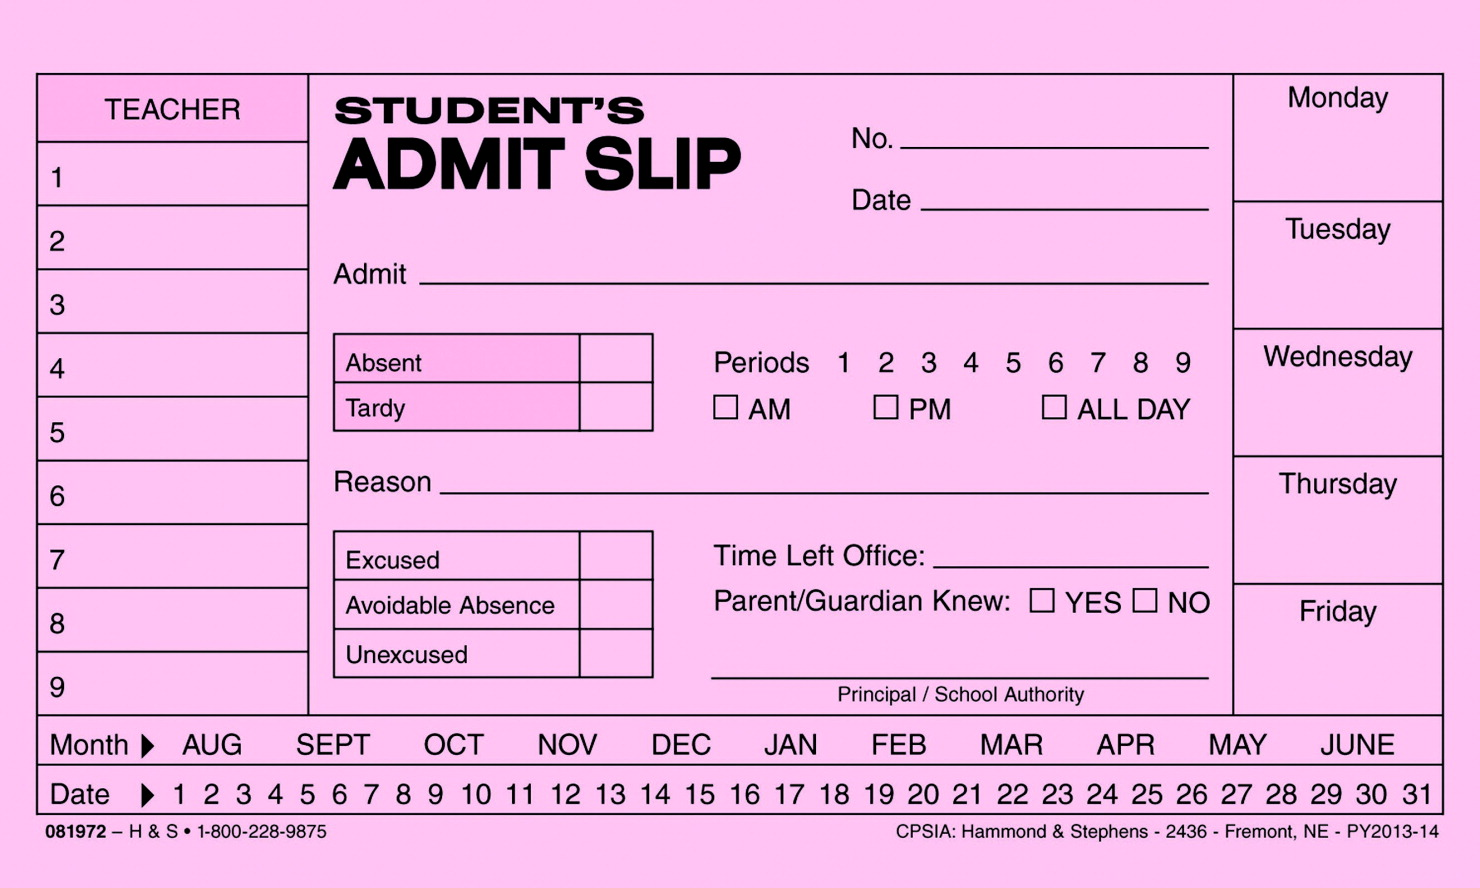 Hammond & Stephens 1 Ply Student Admit Slip Pad, 3 x 5 Inches, Pack of 10 Pads